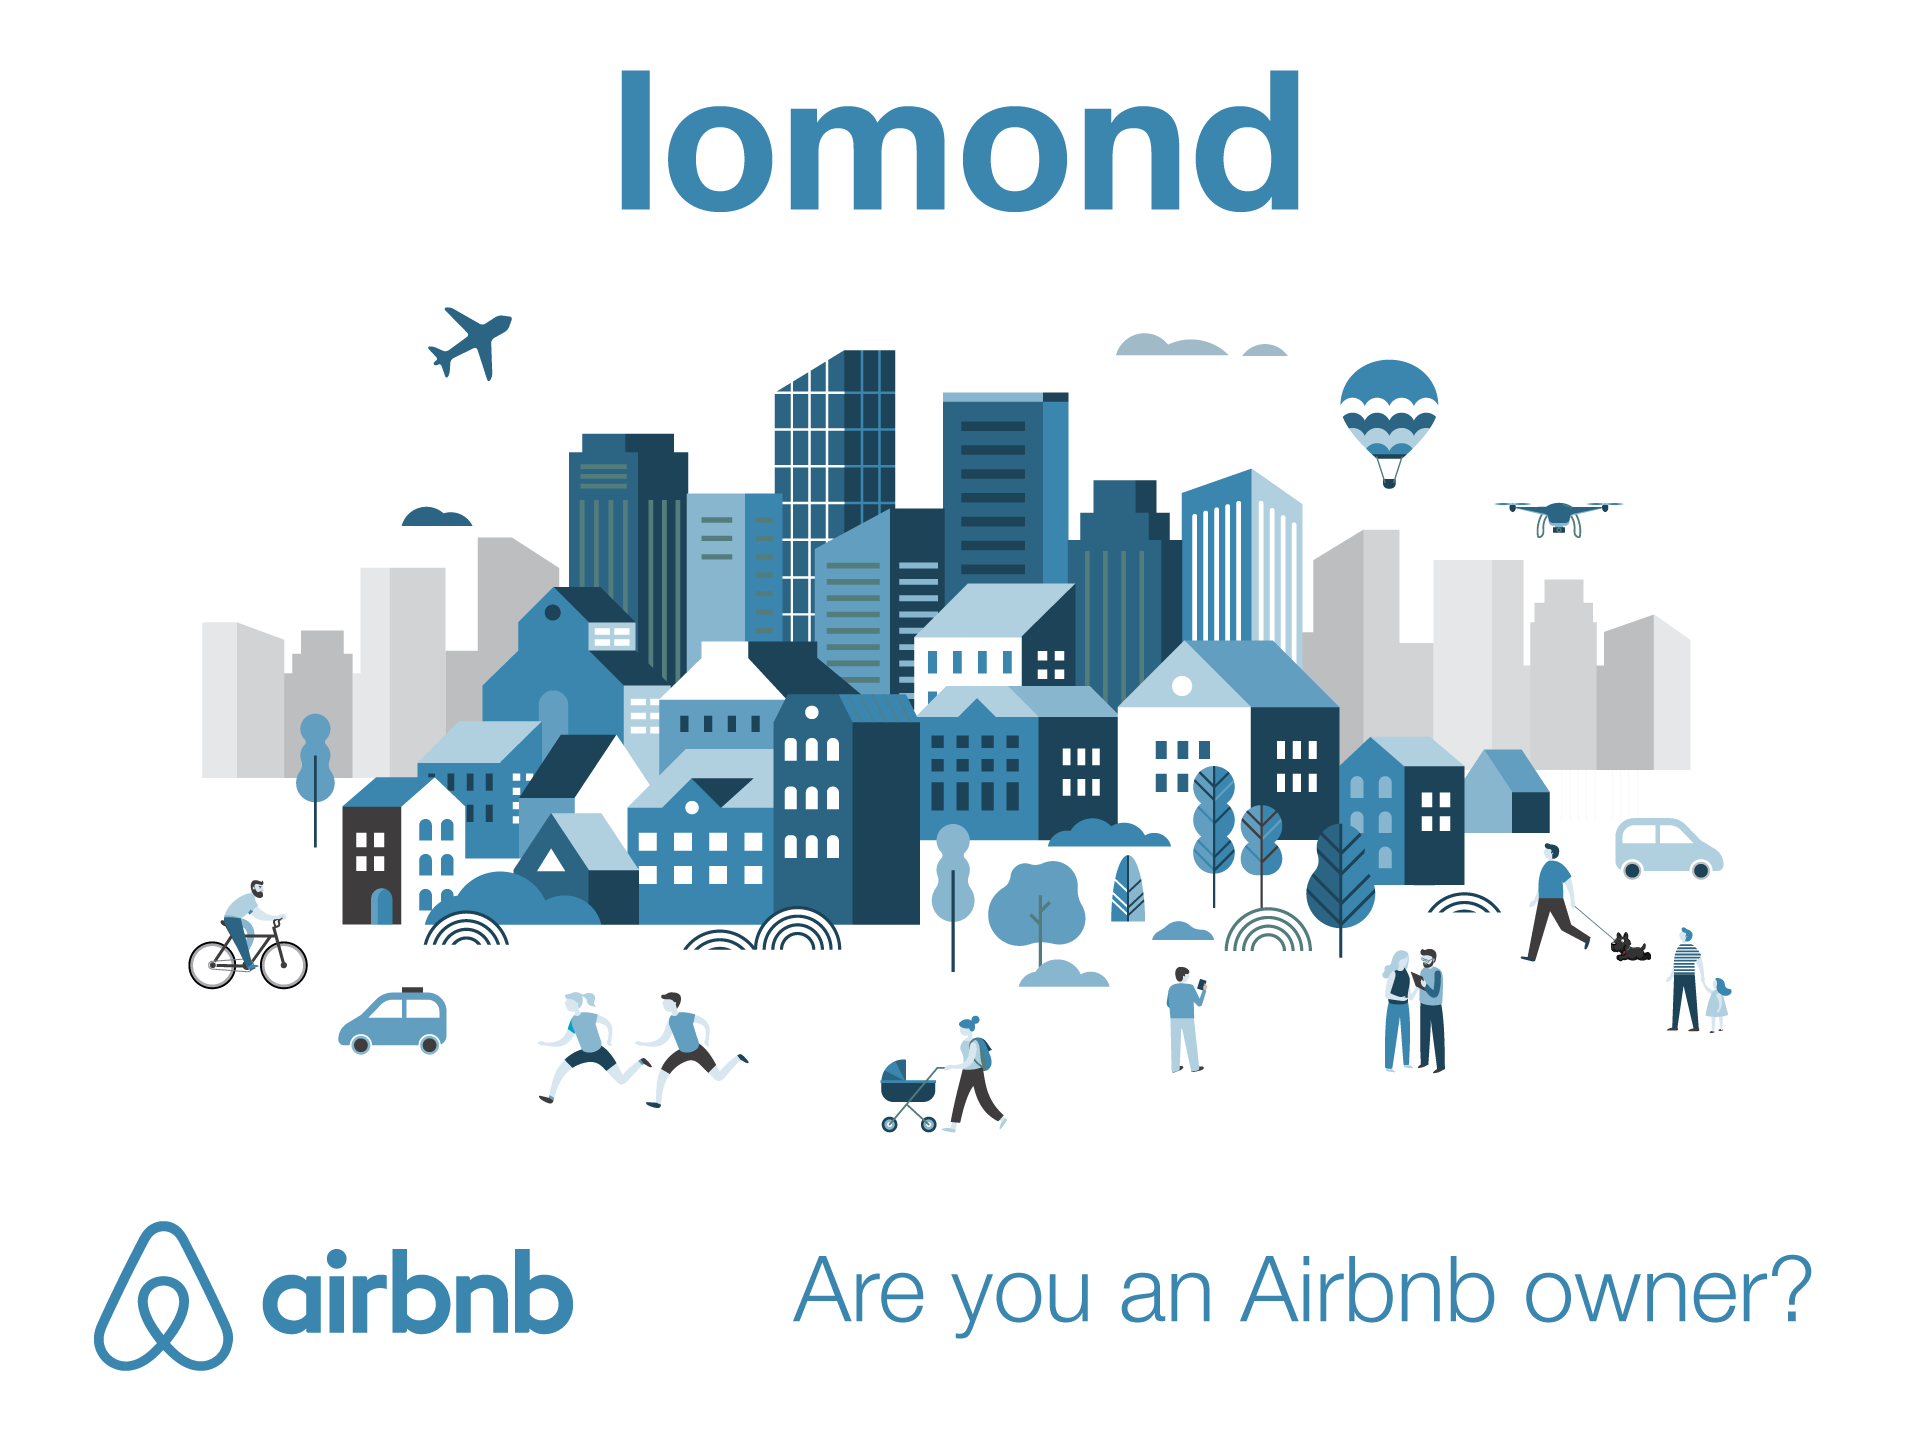 Are you an airbnb owner?